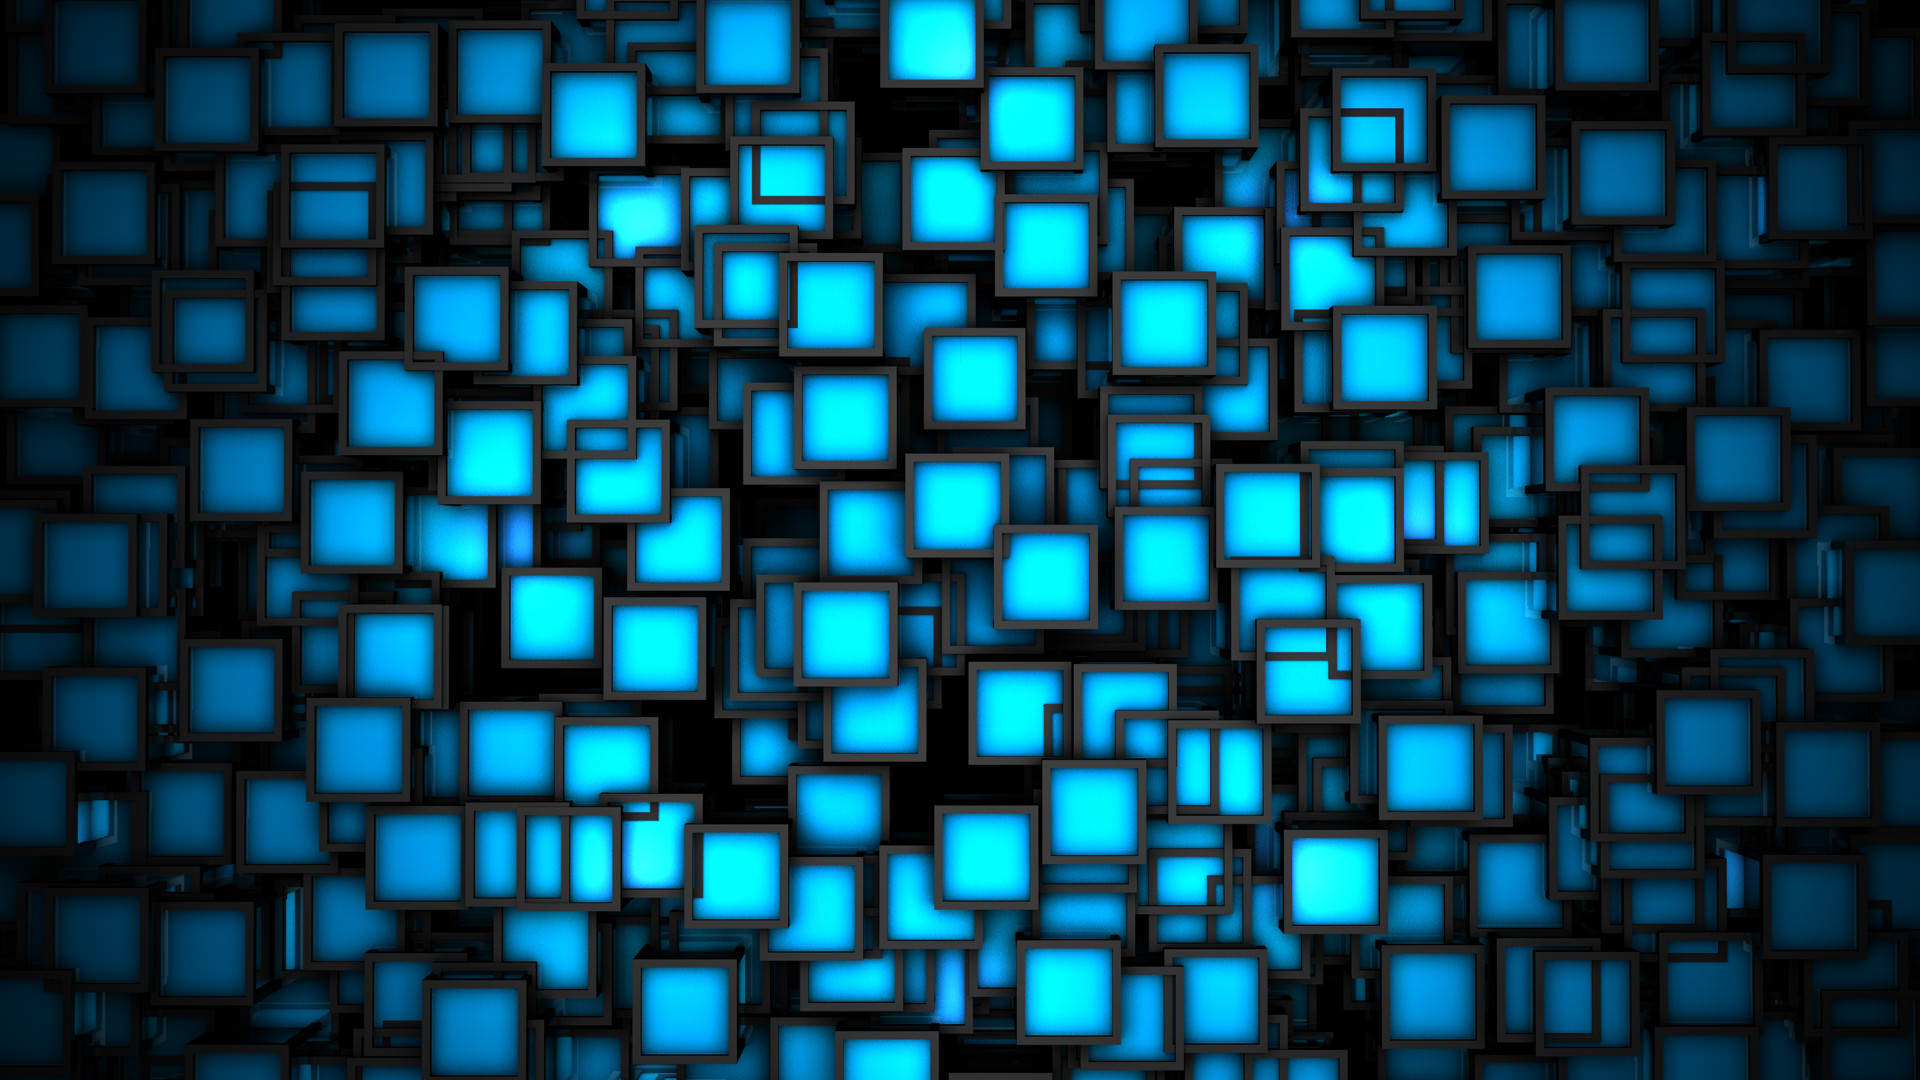 neon squares background